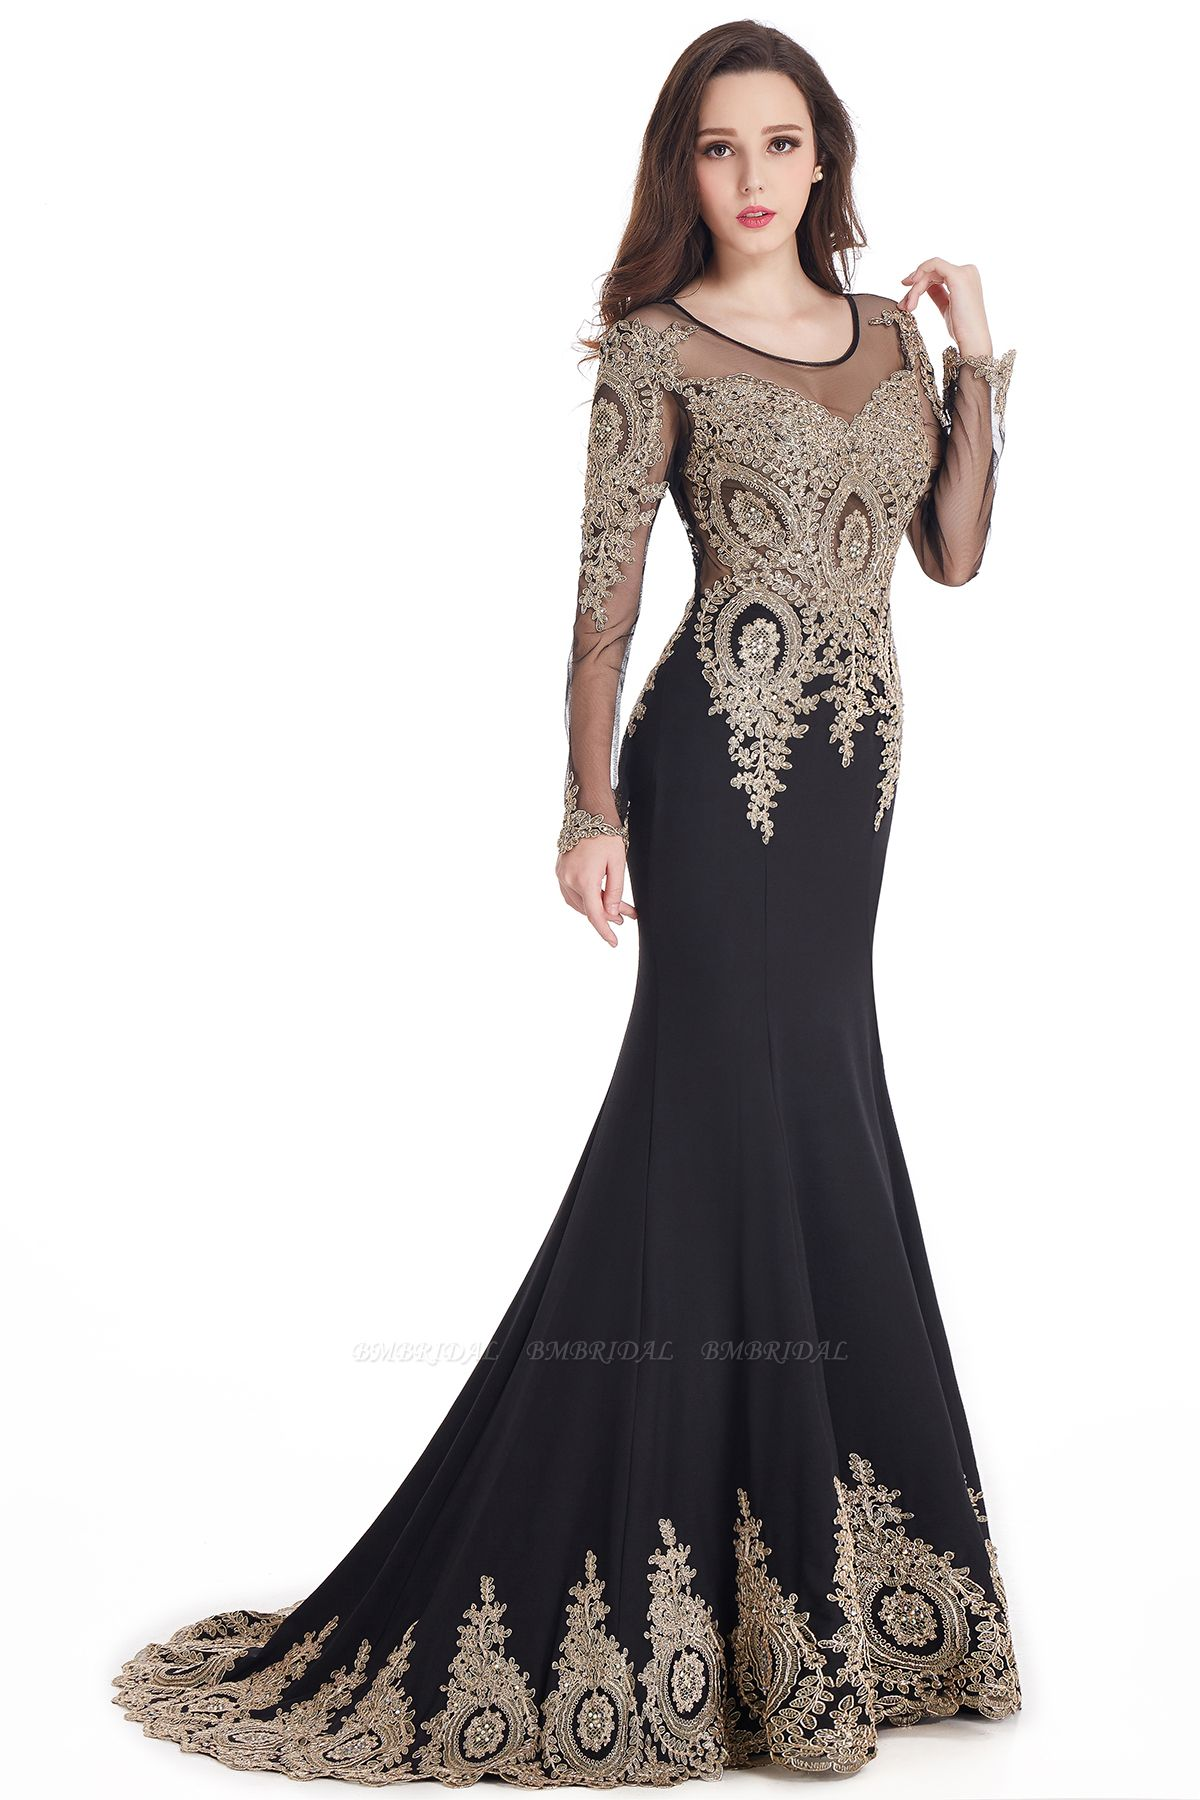 Gorgeous Long Sleeve Mermaid Evening Party Gowns With Lace Appliques